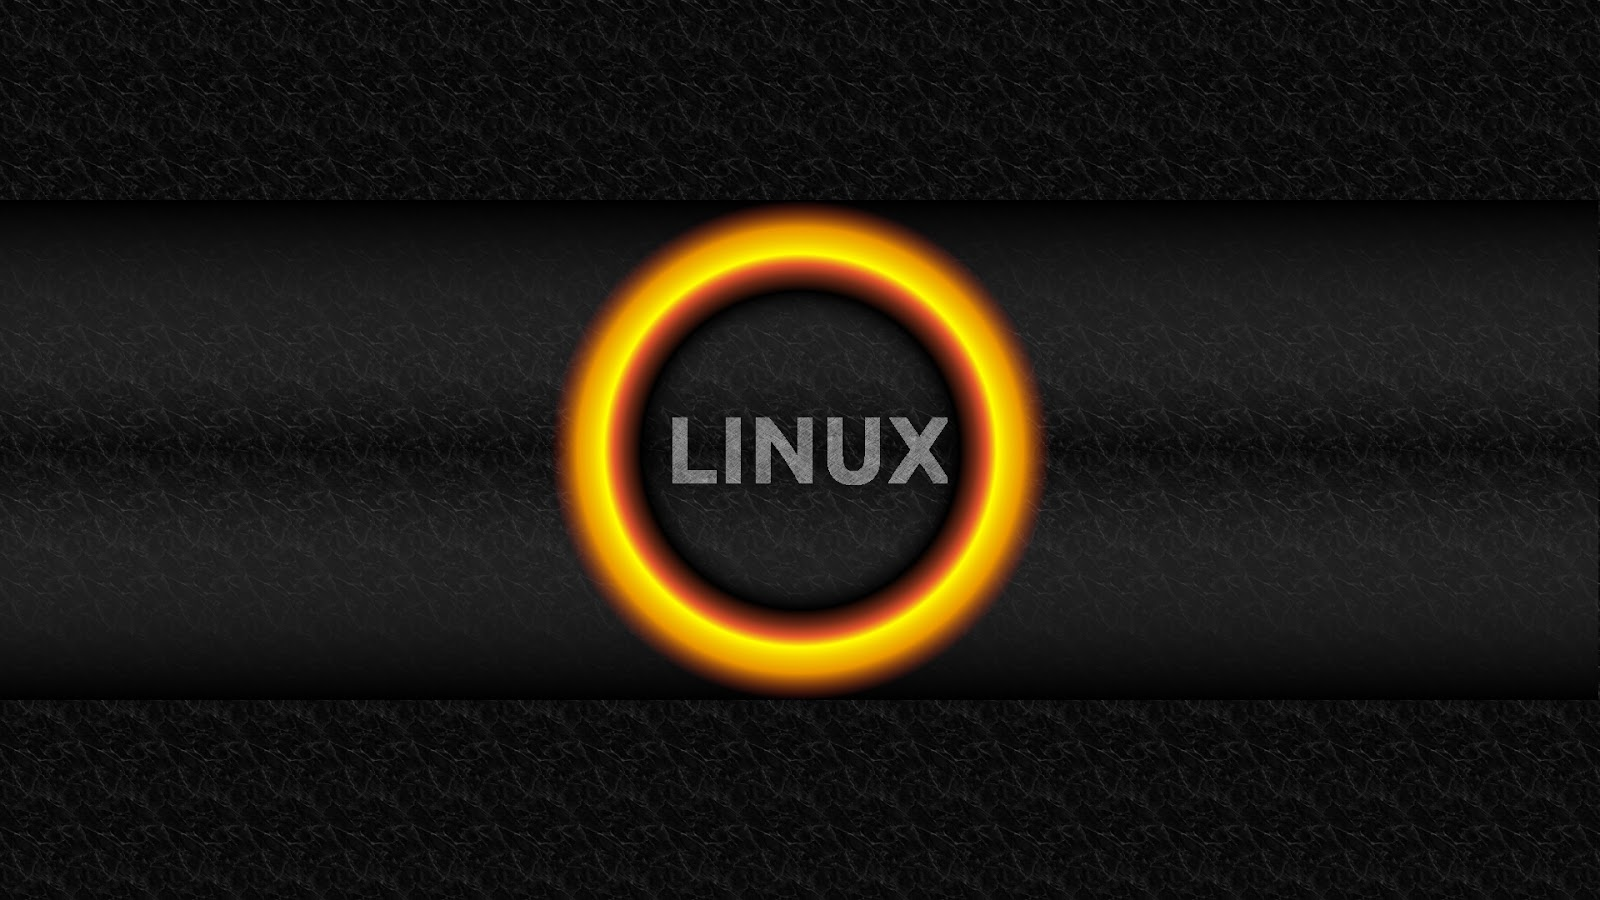 Related Wallpaper for Linux Wallpaper Fullscreen HD 1600x900